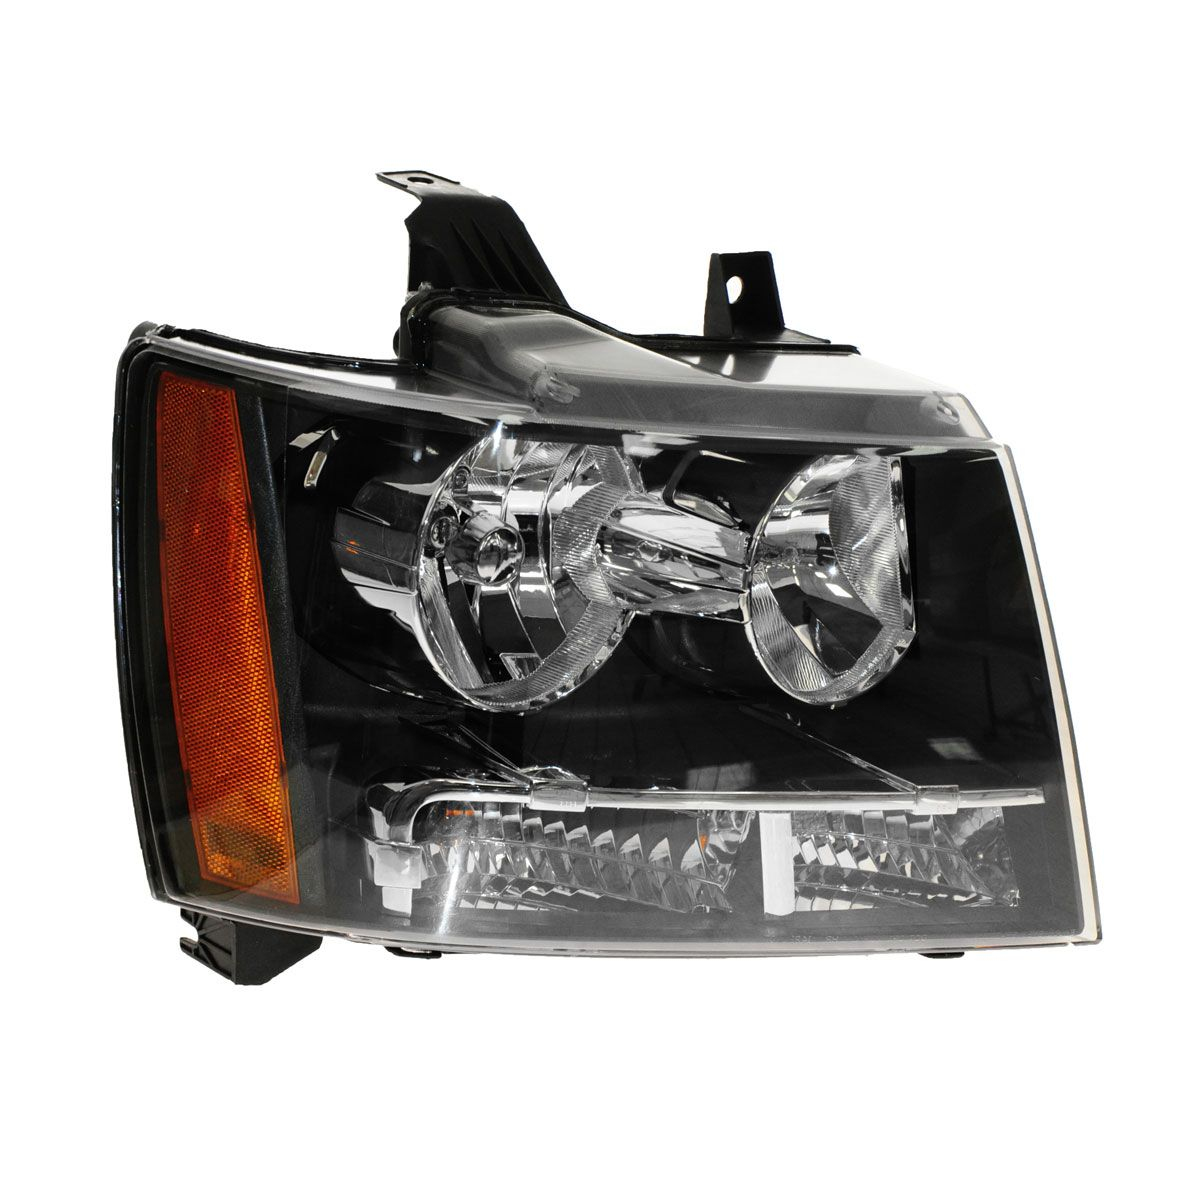 Headlight Headlamp Passenger Side Right RH for 07-13 Suburban Tahoe Avalanche